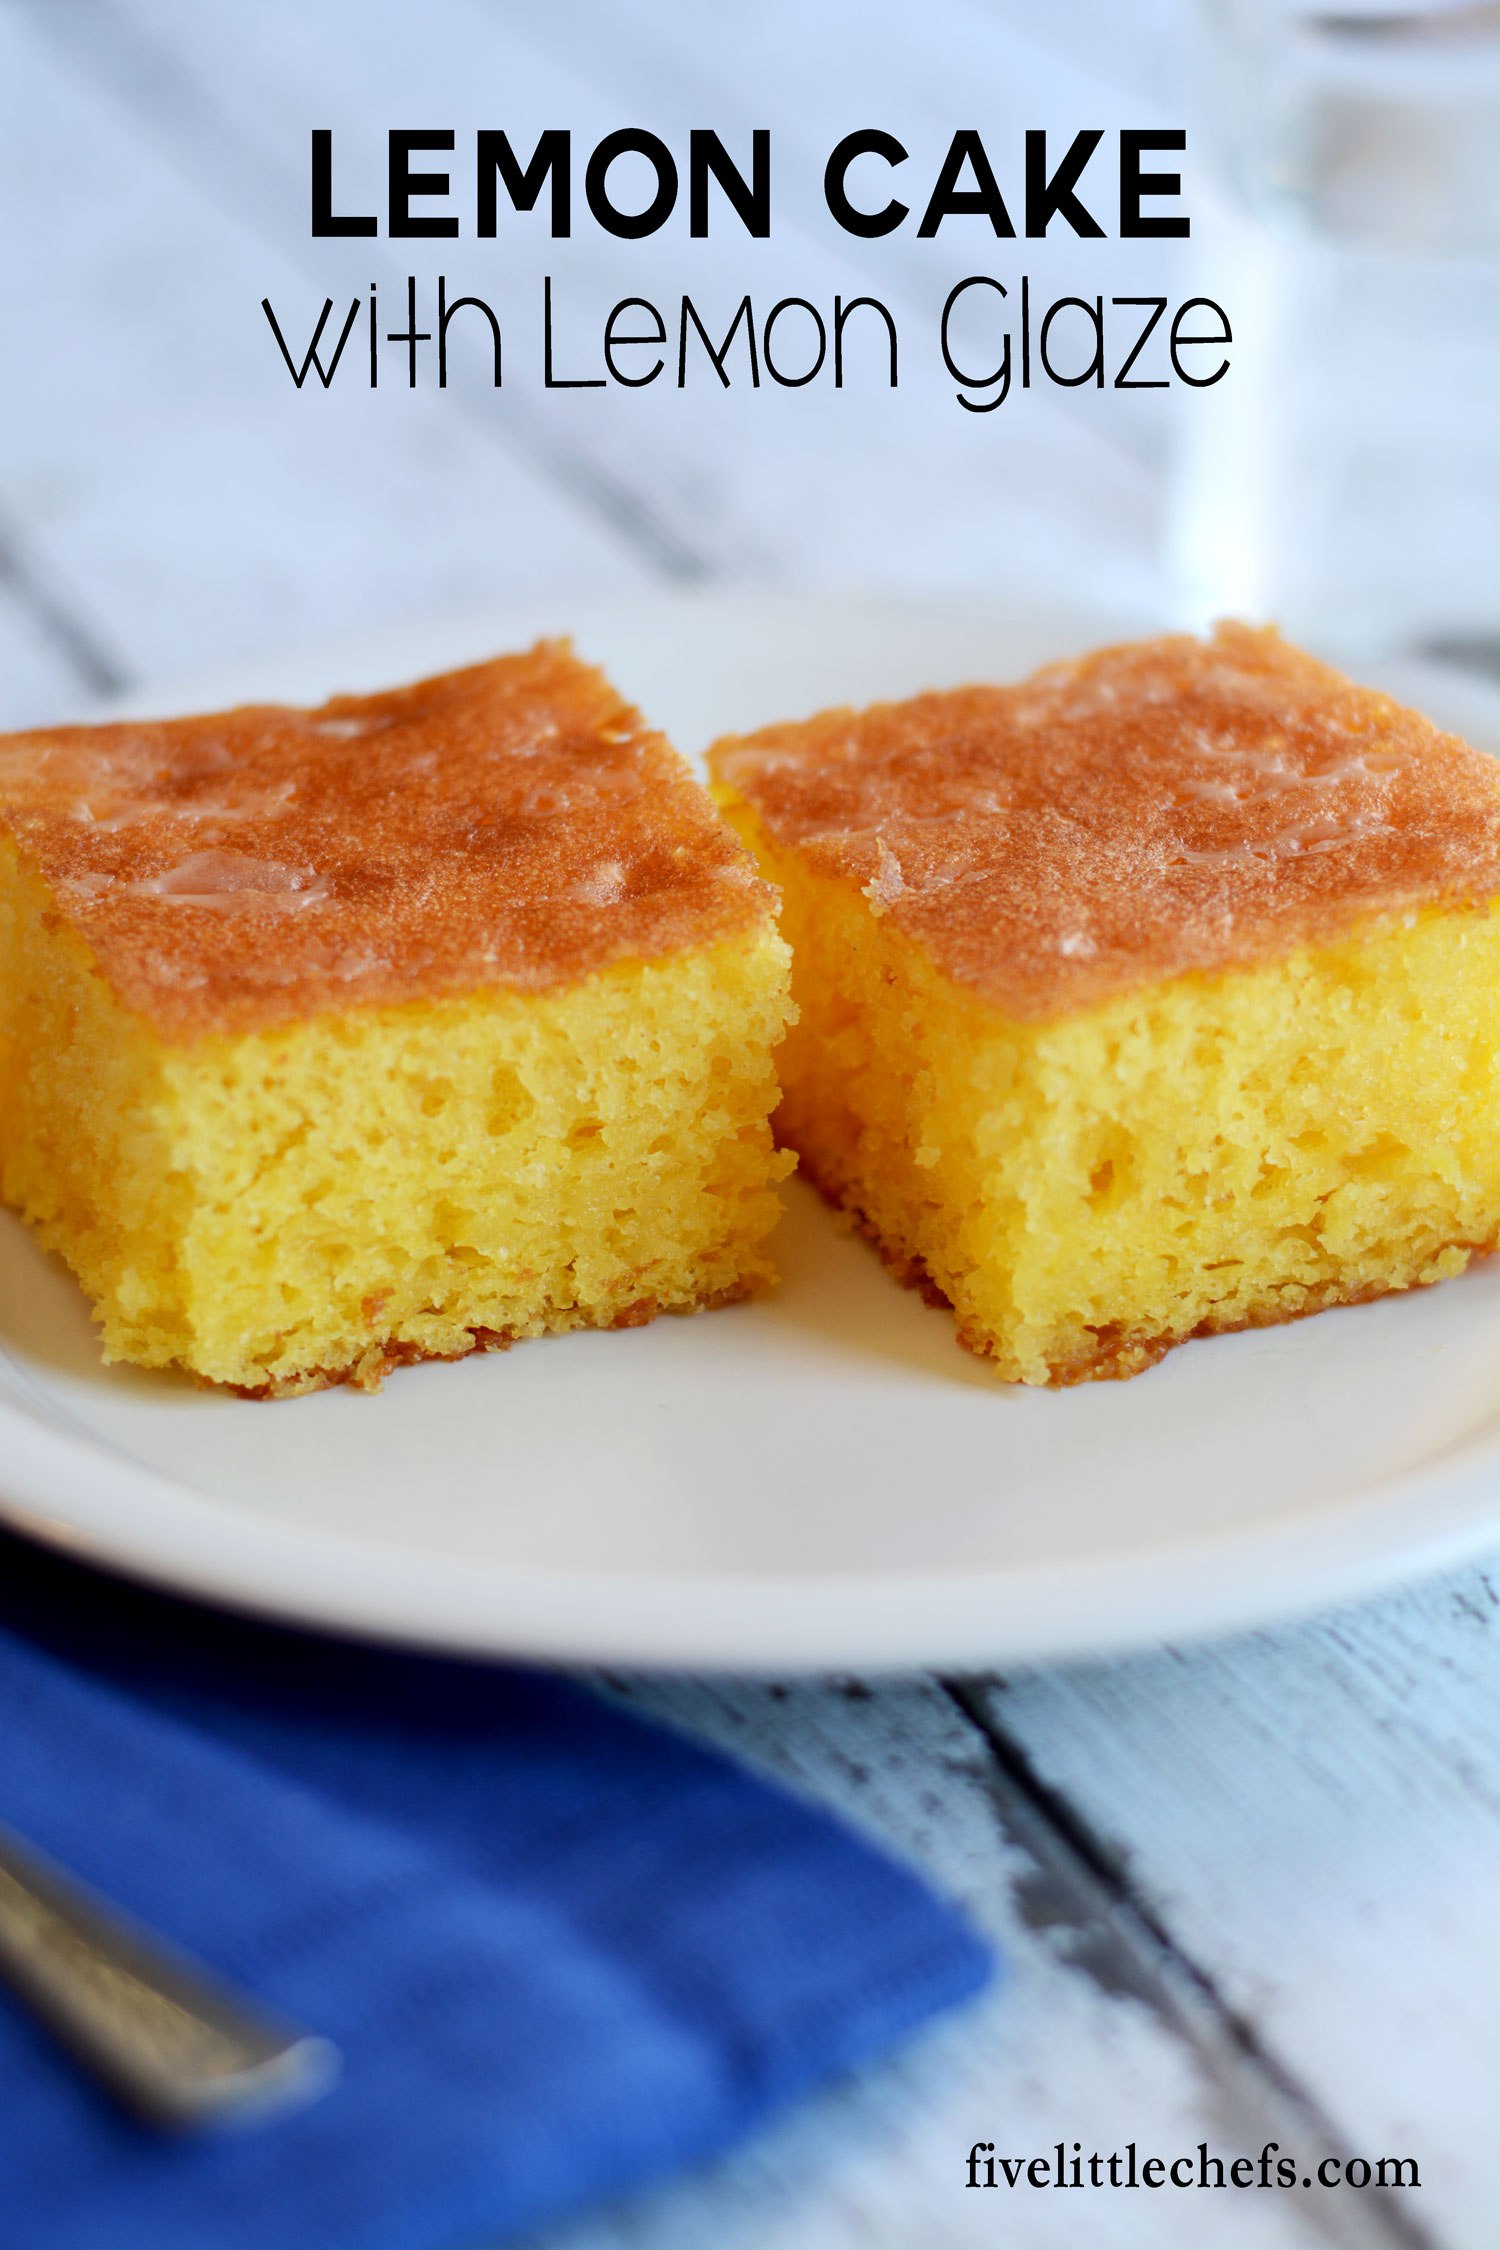 This moist lemon cake recipe has an easy lemon glaze that makes it one of the best desserts for any meal.